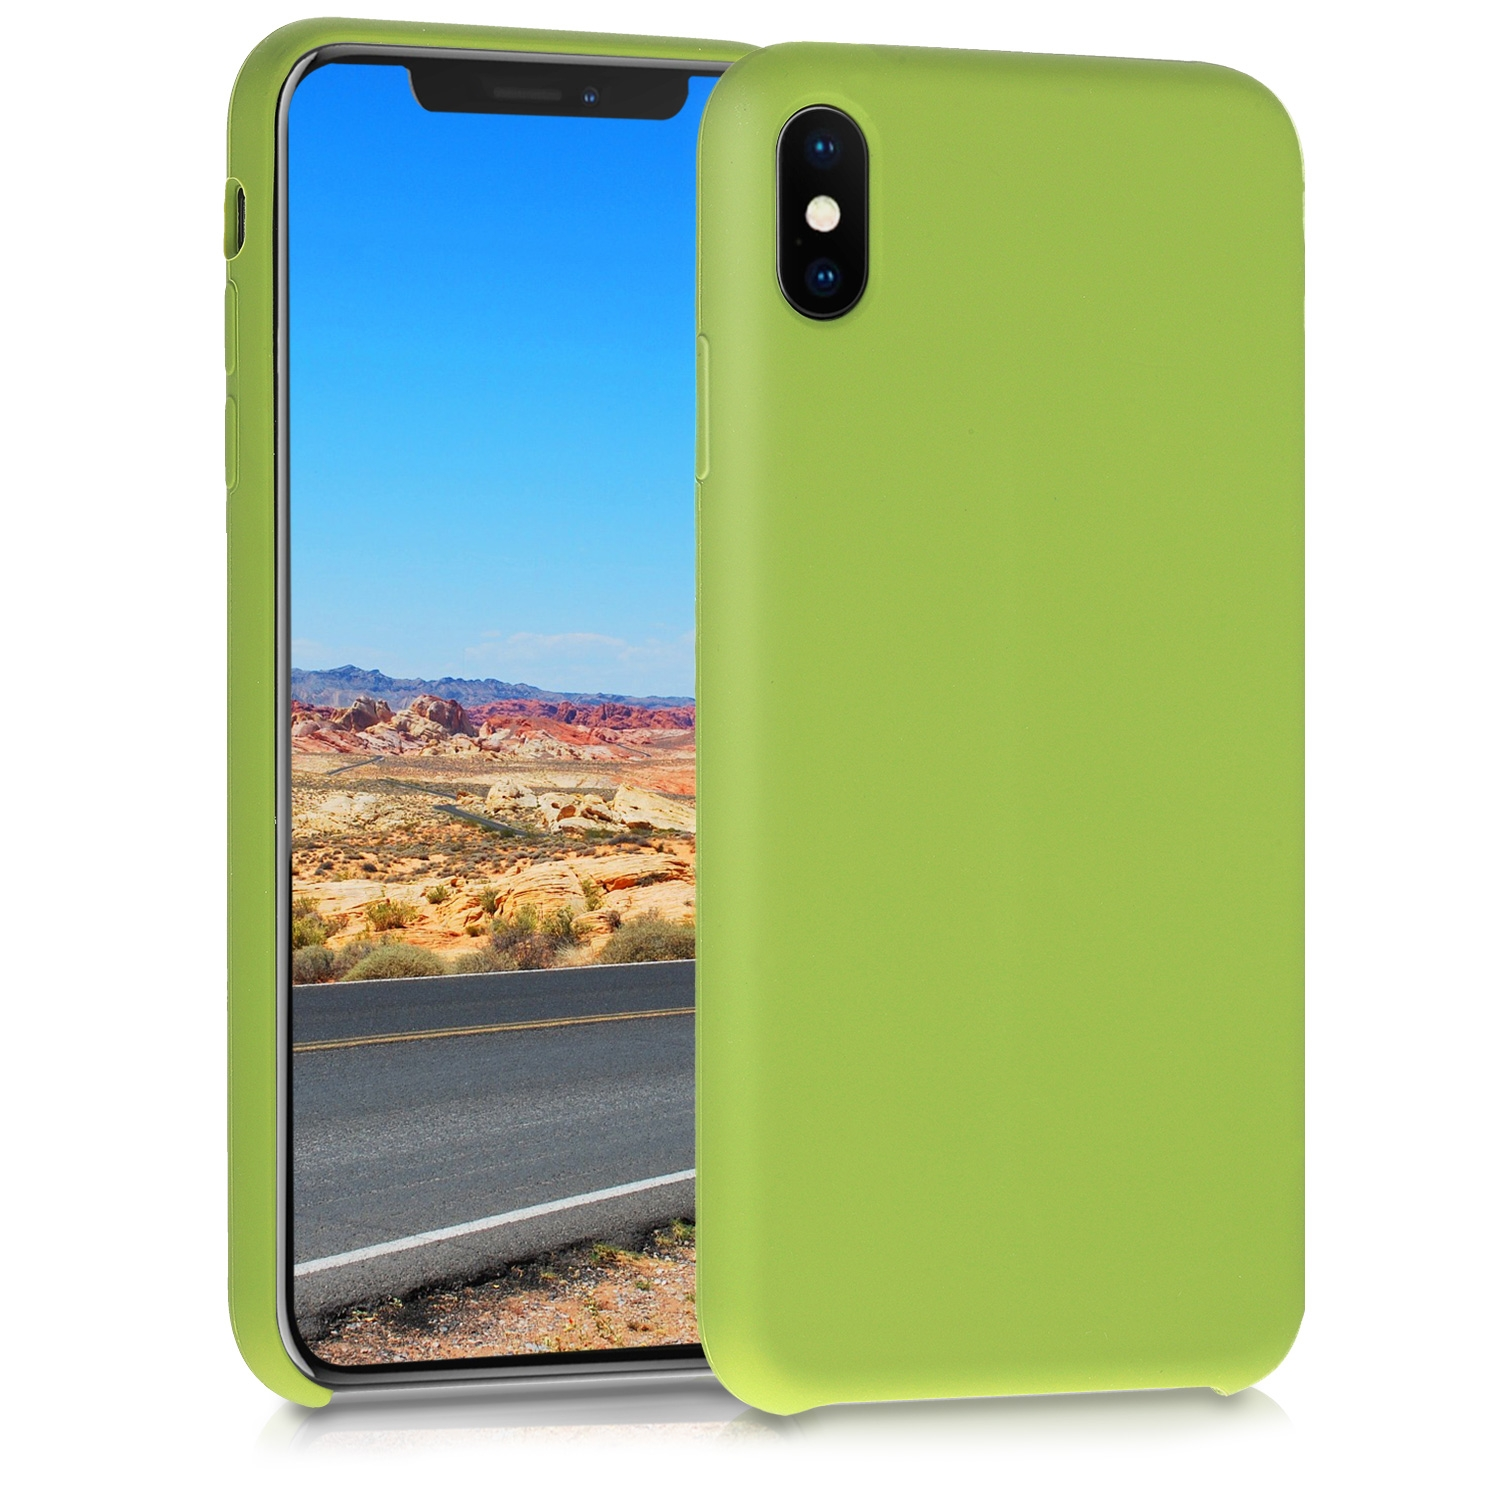 KW Θήκη Σιλικόνης Apple iPhone XS Max - Soft Flexible Rubber Protective Cover - Pale Olive Green (45909.148)